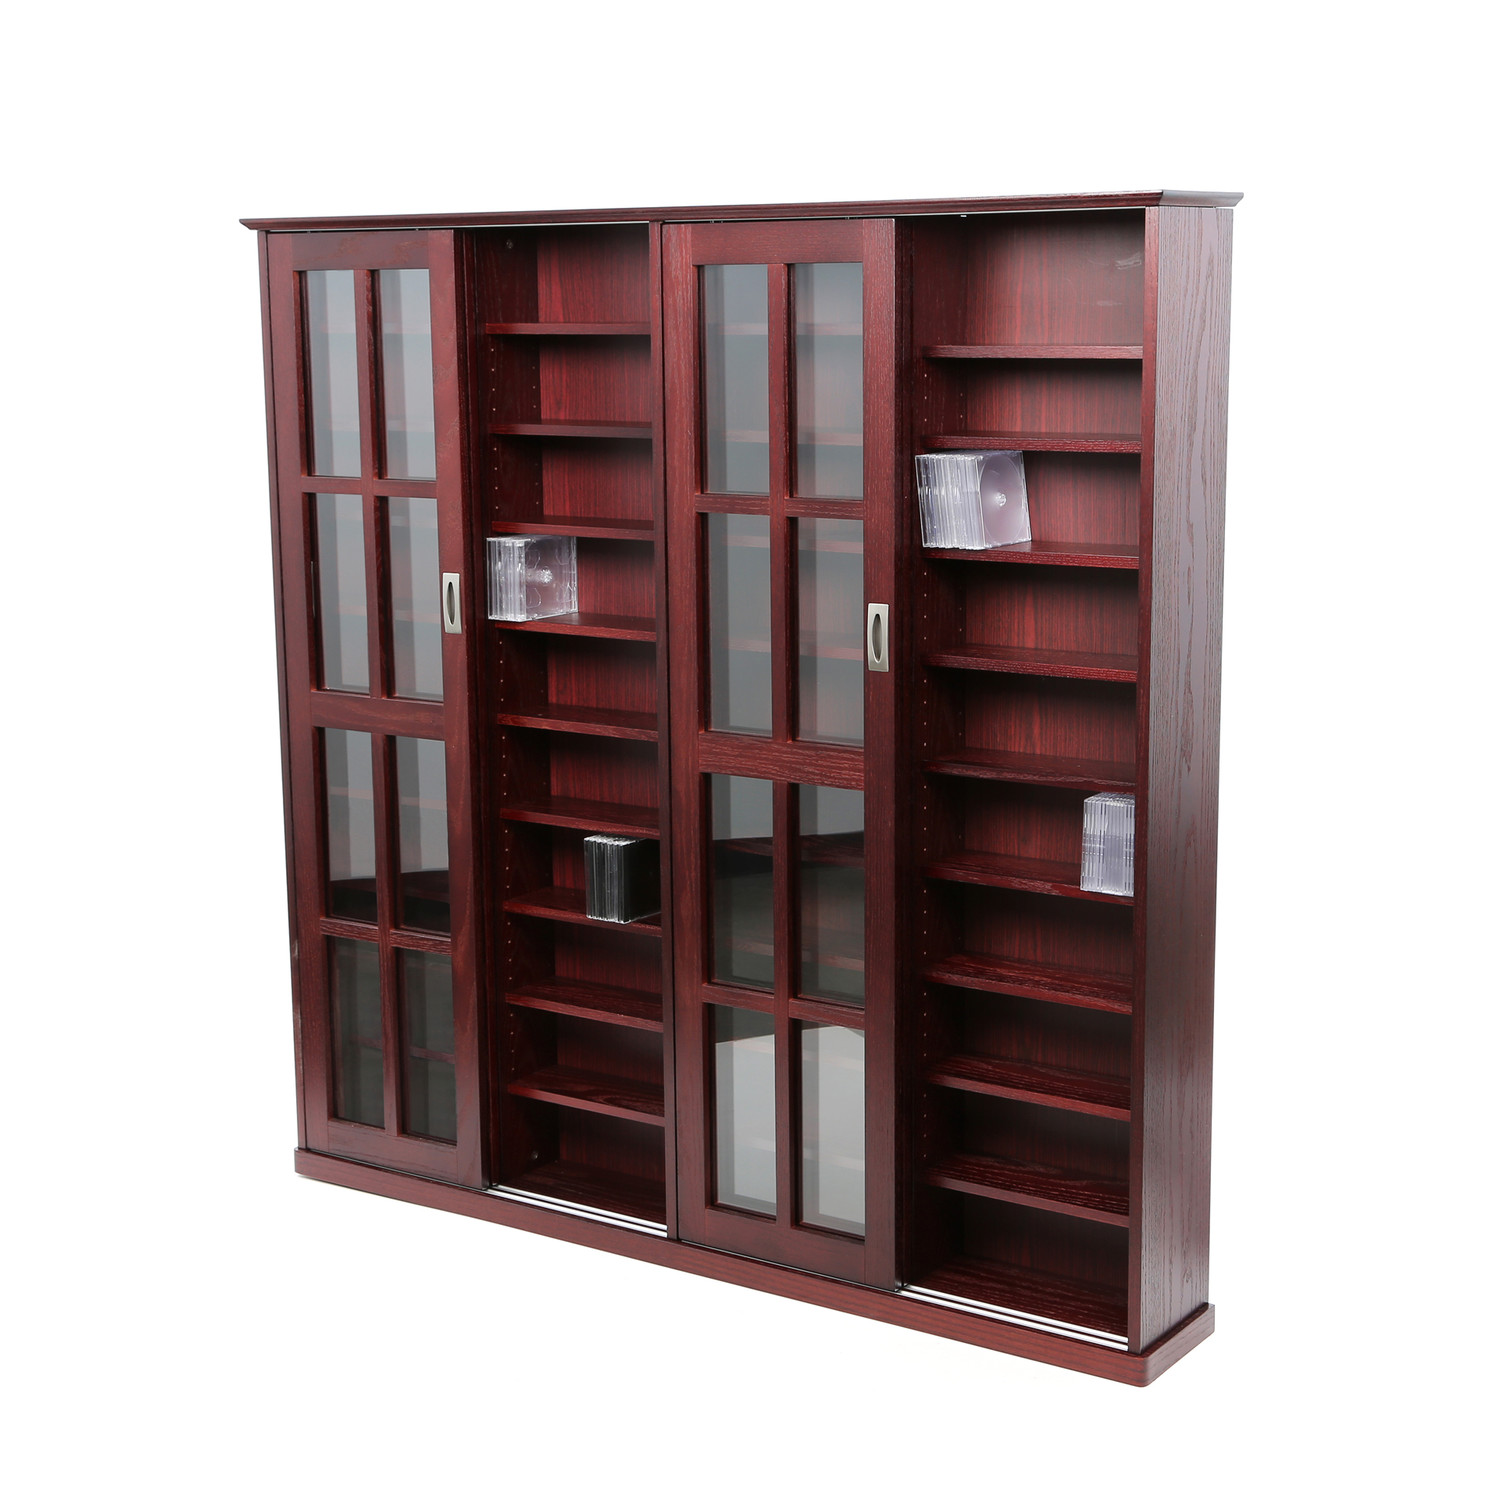 Wooden Storage Cabinets With Doors Decorative Storage Cabinets With Glass Doors You Should Buy It